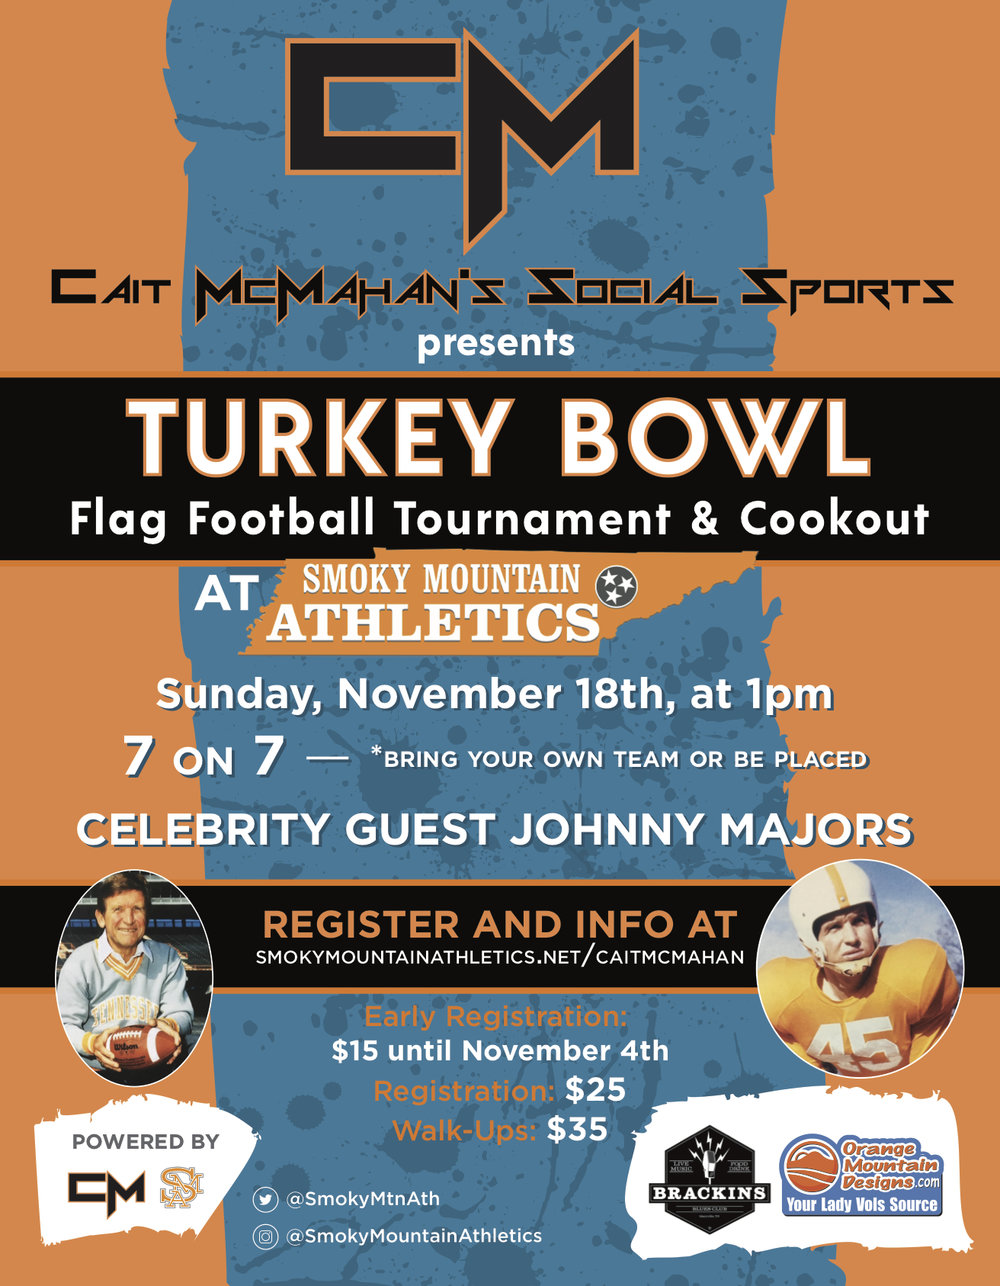 Social Sports: Turkey Bowl Flag Football Tournament & Cookout - -turkey Bowl Flag Football Tournament & Cookout-Tournament will be held at Smoky MOuntain Athletics on sunday November 18th at 1:00pm-tournament format is 7-on-7-Participants can either bring a team or you can show up as an individual and be placed on a team-Tournament will feature a cookout with food for sale Smoky mountain athletics.-All members of a team must complete registration individually (Fill in team name where applicable)$15 per person early registration discount until november 4th$25 per person registration fee between november 4th - november 17th$35 per person registration fee for walk-ups the day of the tournament-If you have any questions please feel free to email us at smokymtnath@gmail.com** All online Payments will have a 4% fee added to them